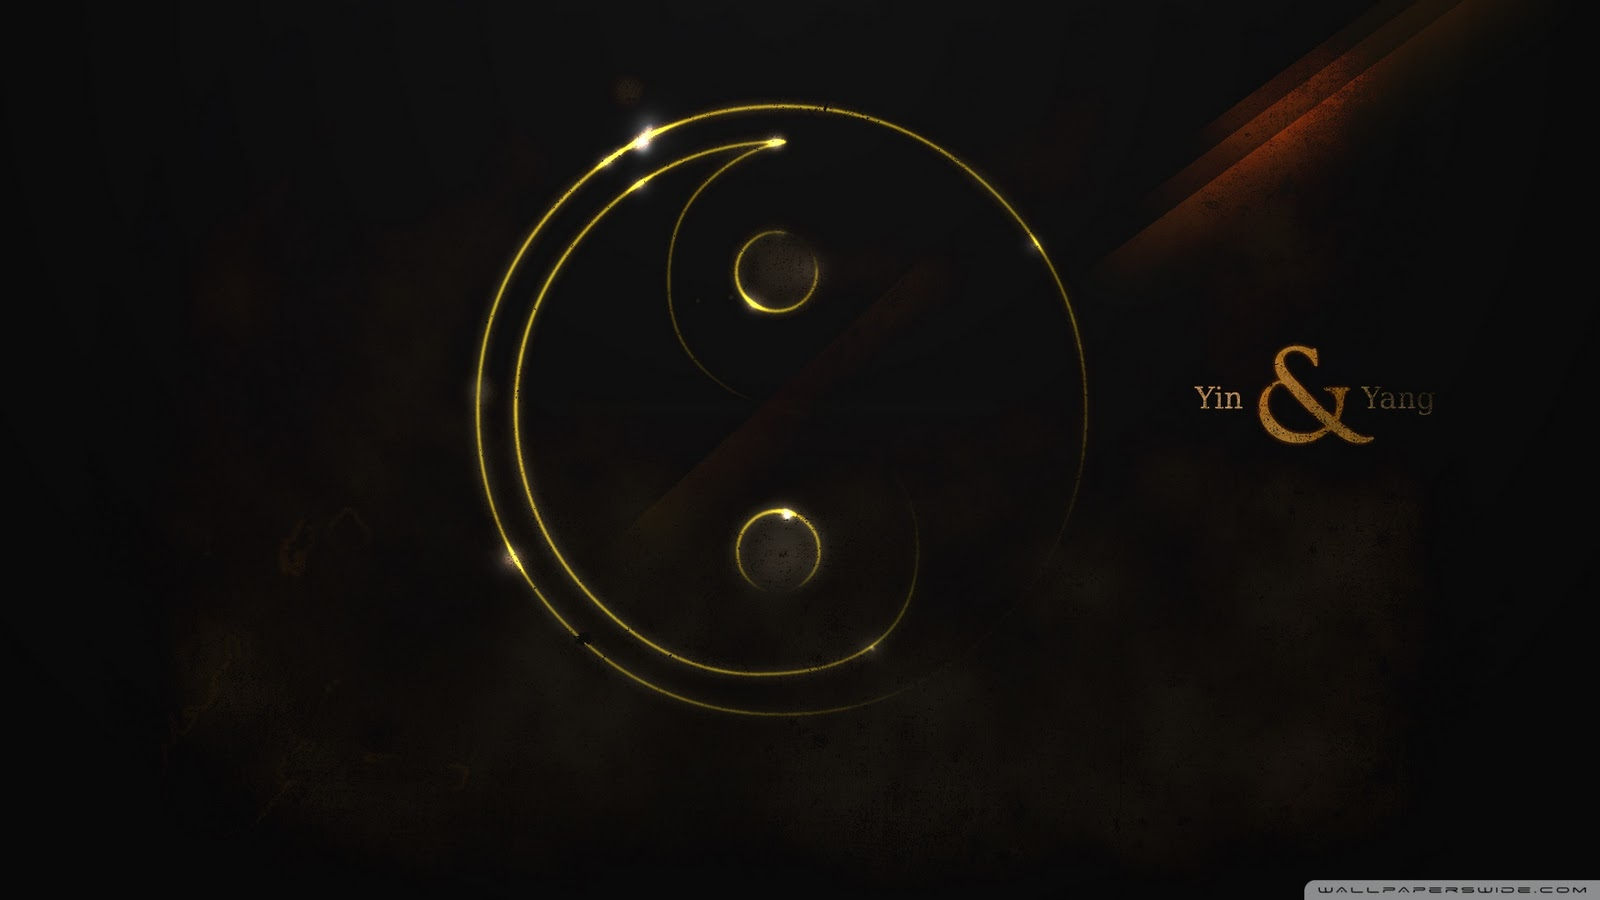 yin-yang full hd wallpapers - wallpapers full hd